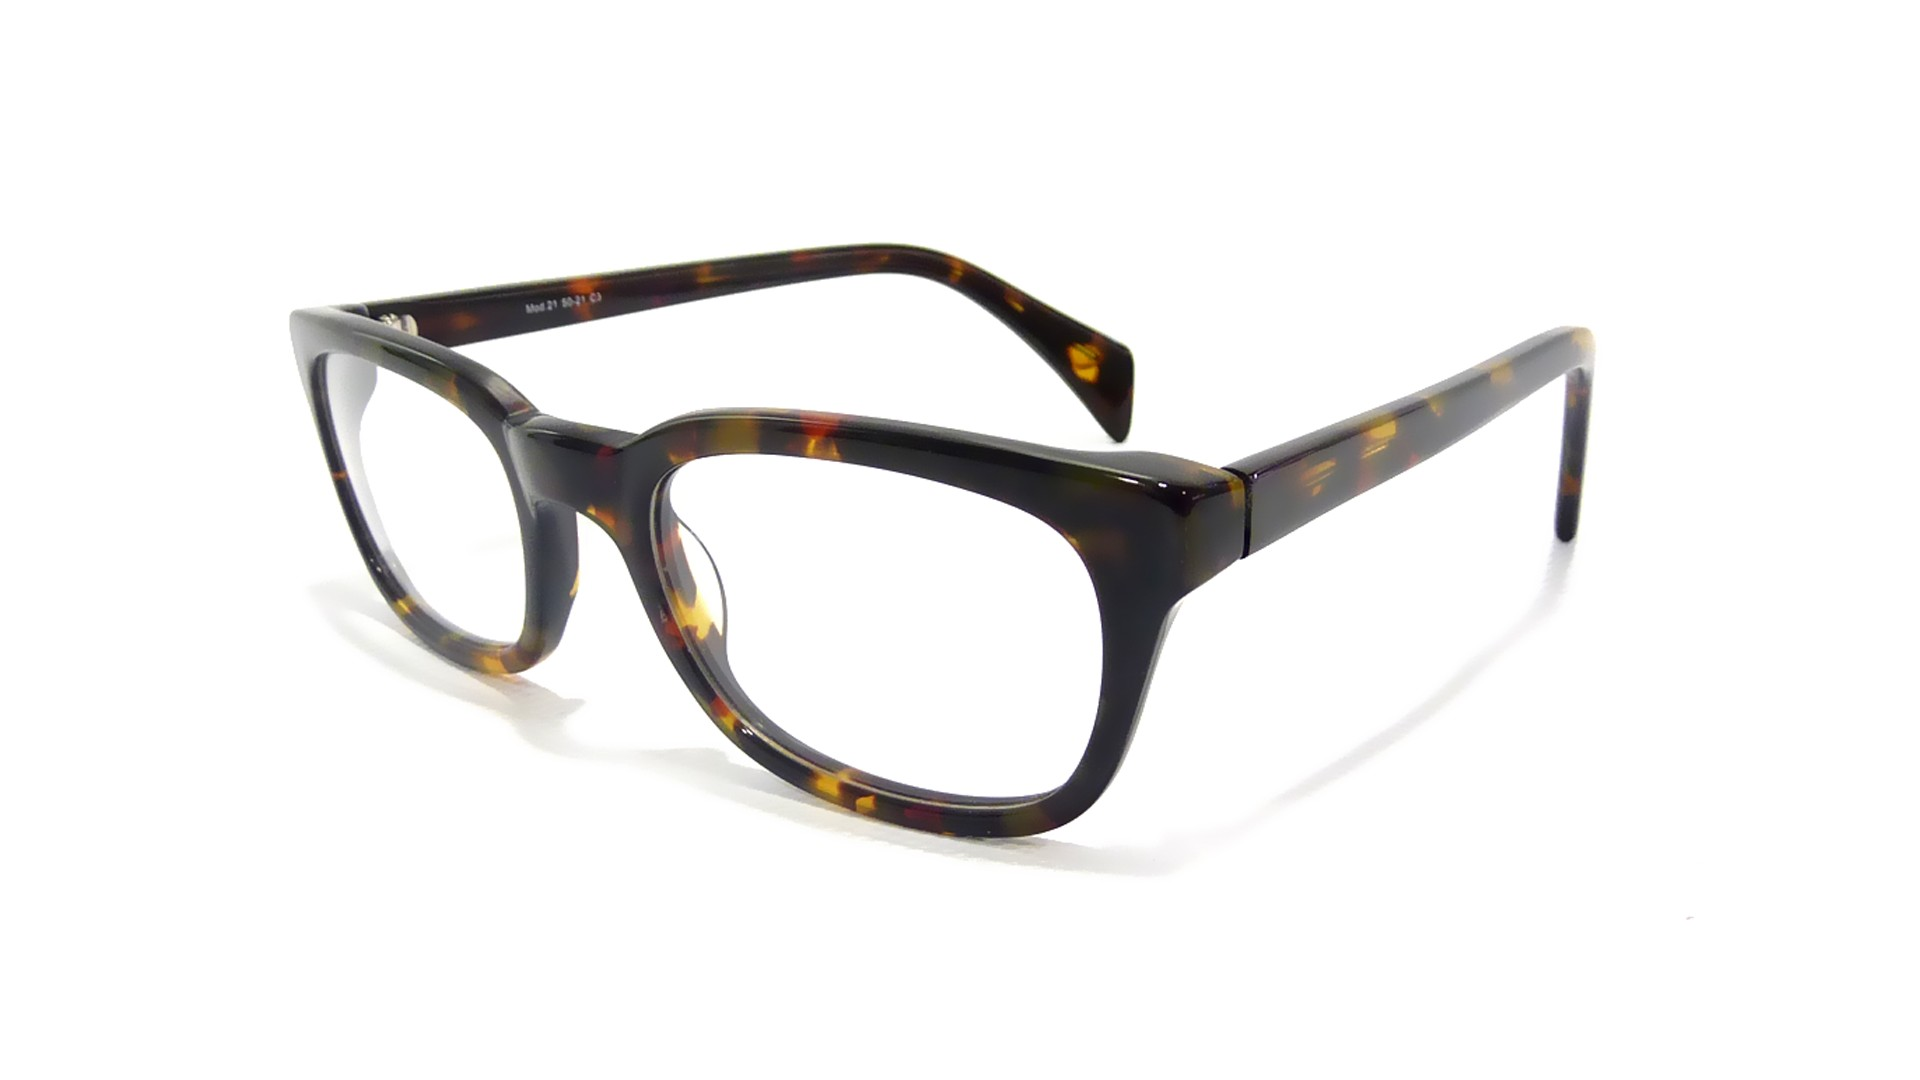 Glasses Frames Recto Or Quiapo : Thickness